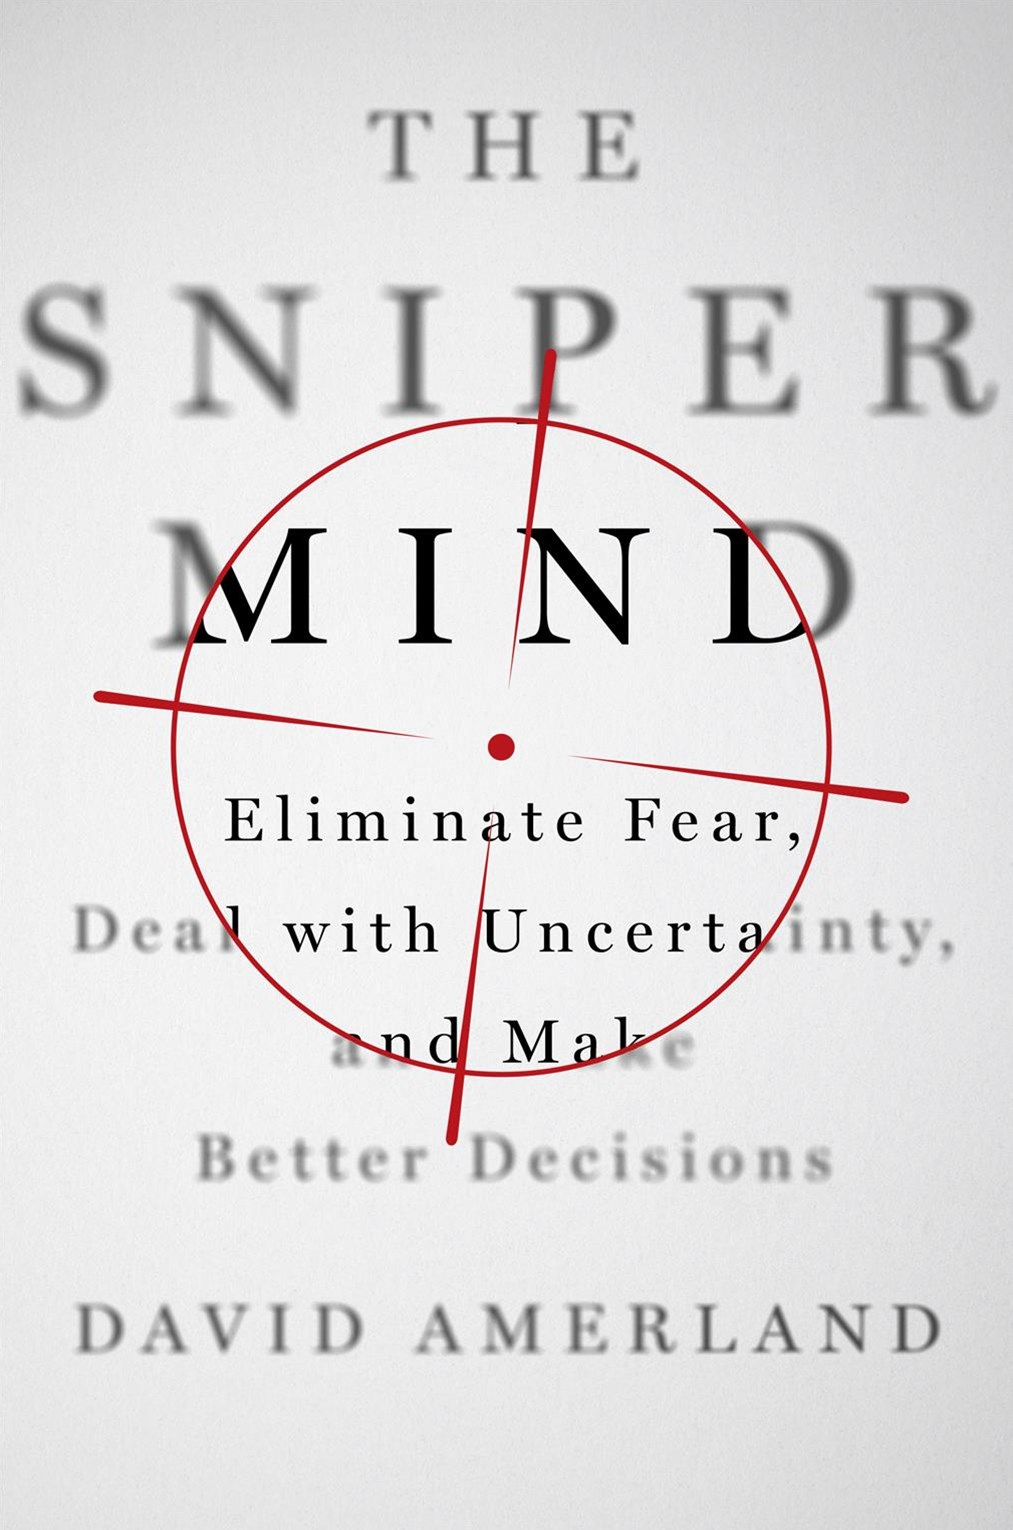 Sniper Mind, The: Eliminate Fear, Deal with Uncertainty, and Make